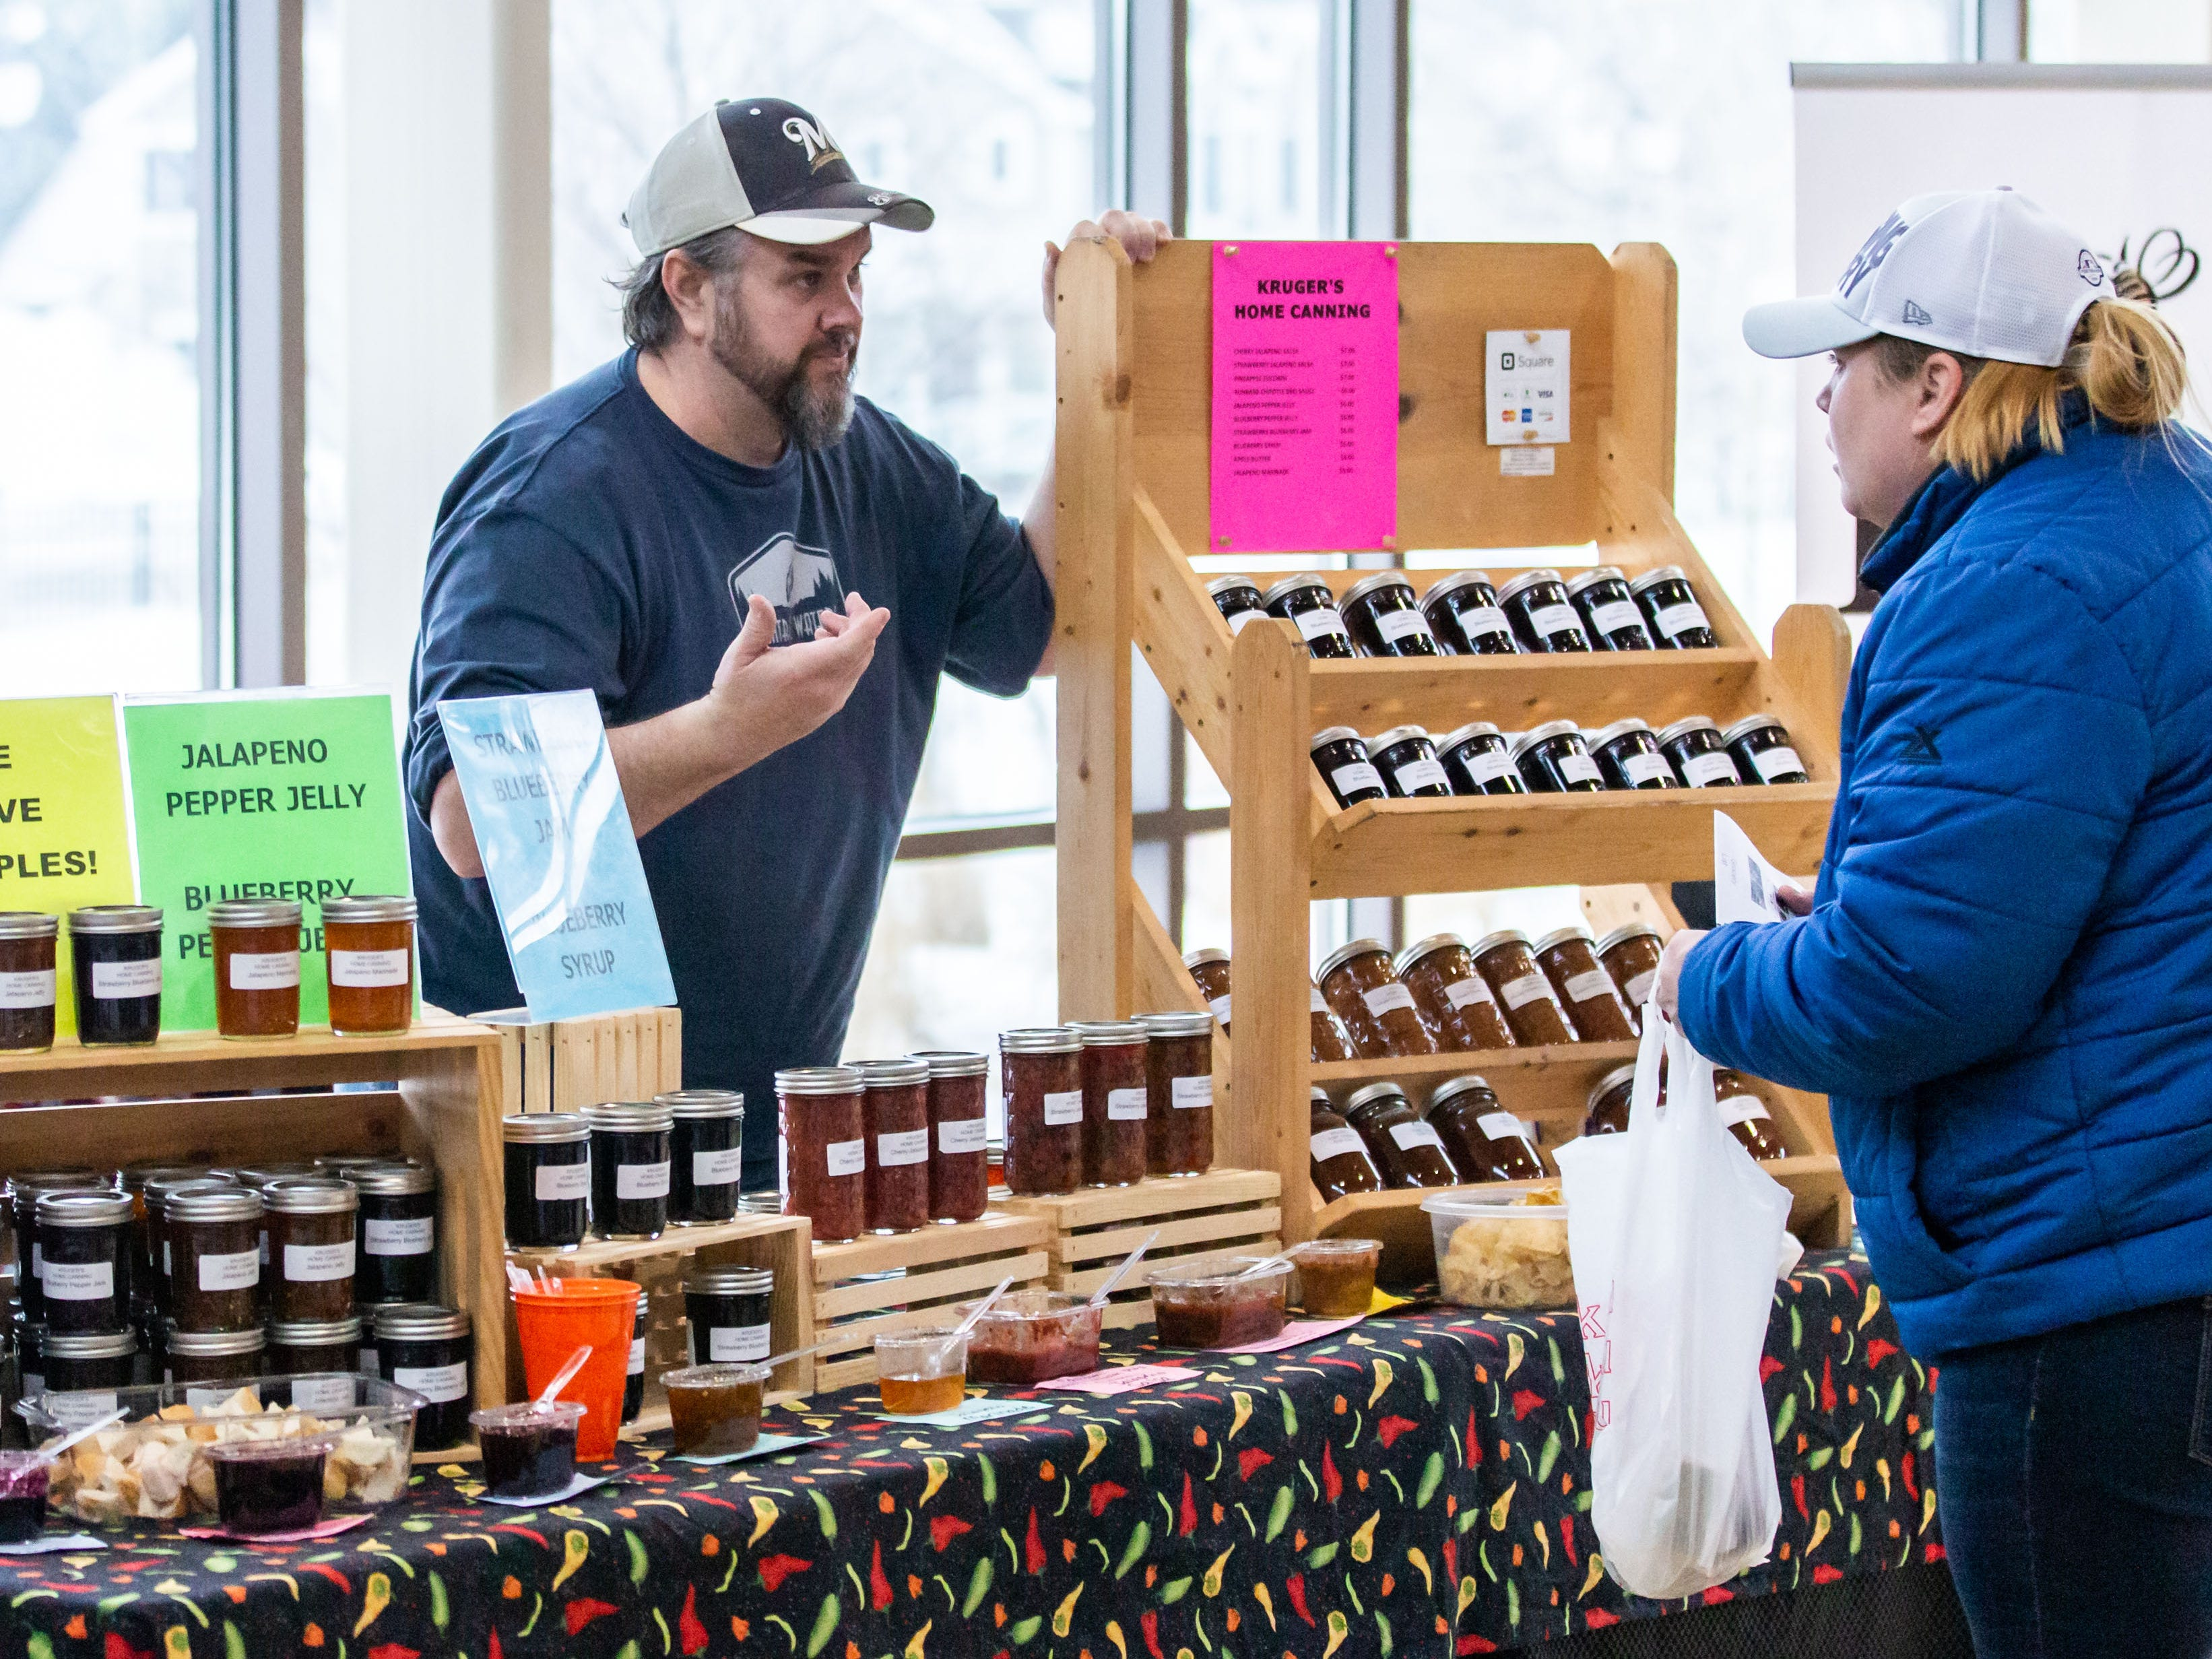 Jessie Kruger of Kruger's Home Canning in Watertown chats with a customer during the Winter Farmers Market at the Sussex Civic Center on Sunday, March 10, 2019.